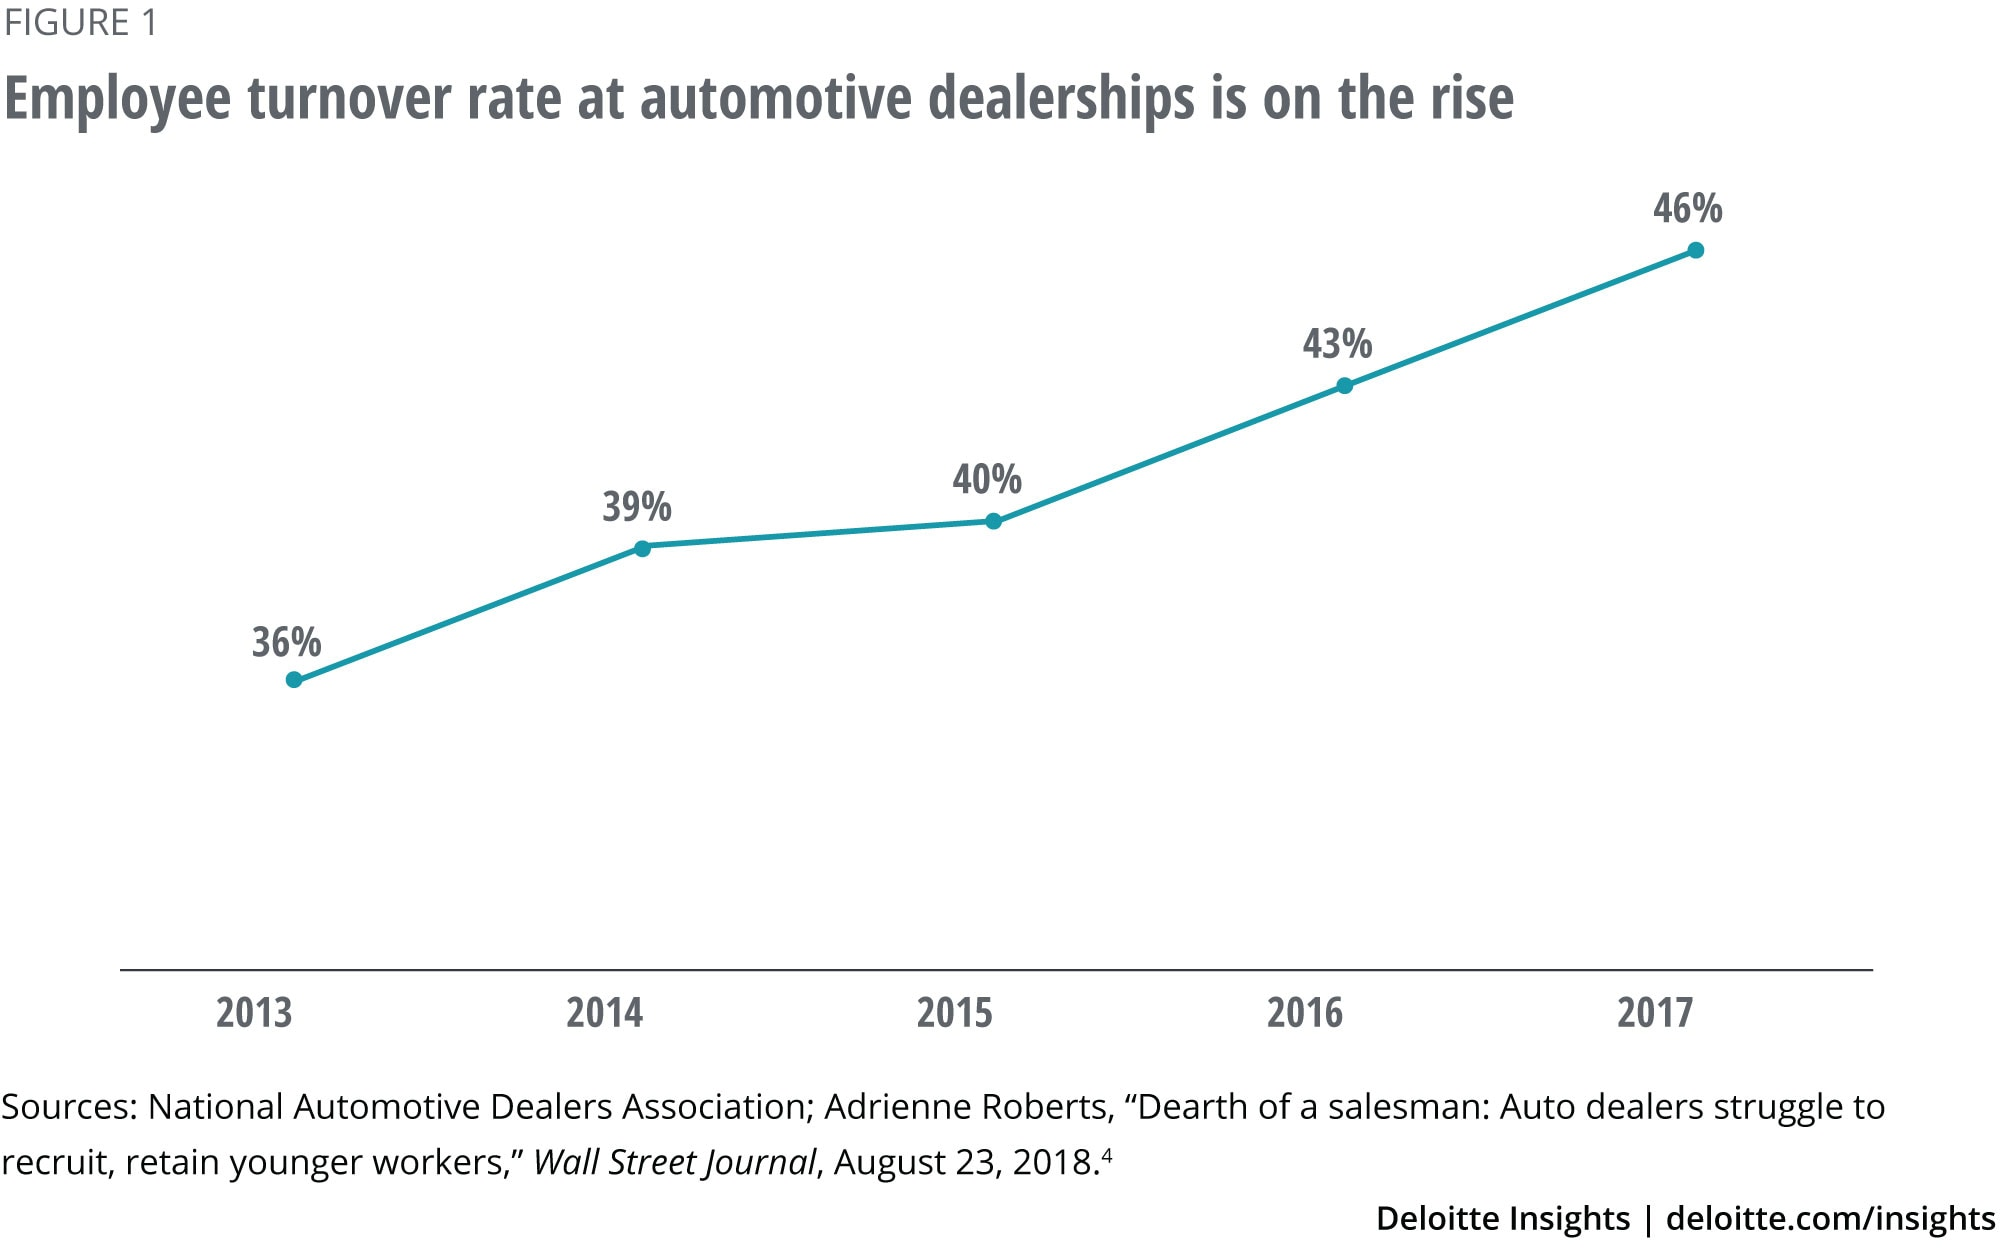 Employee turnover rate at automotive dealerships is on the rise